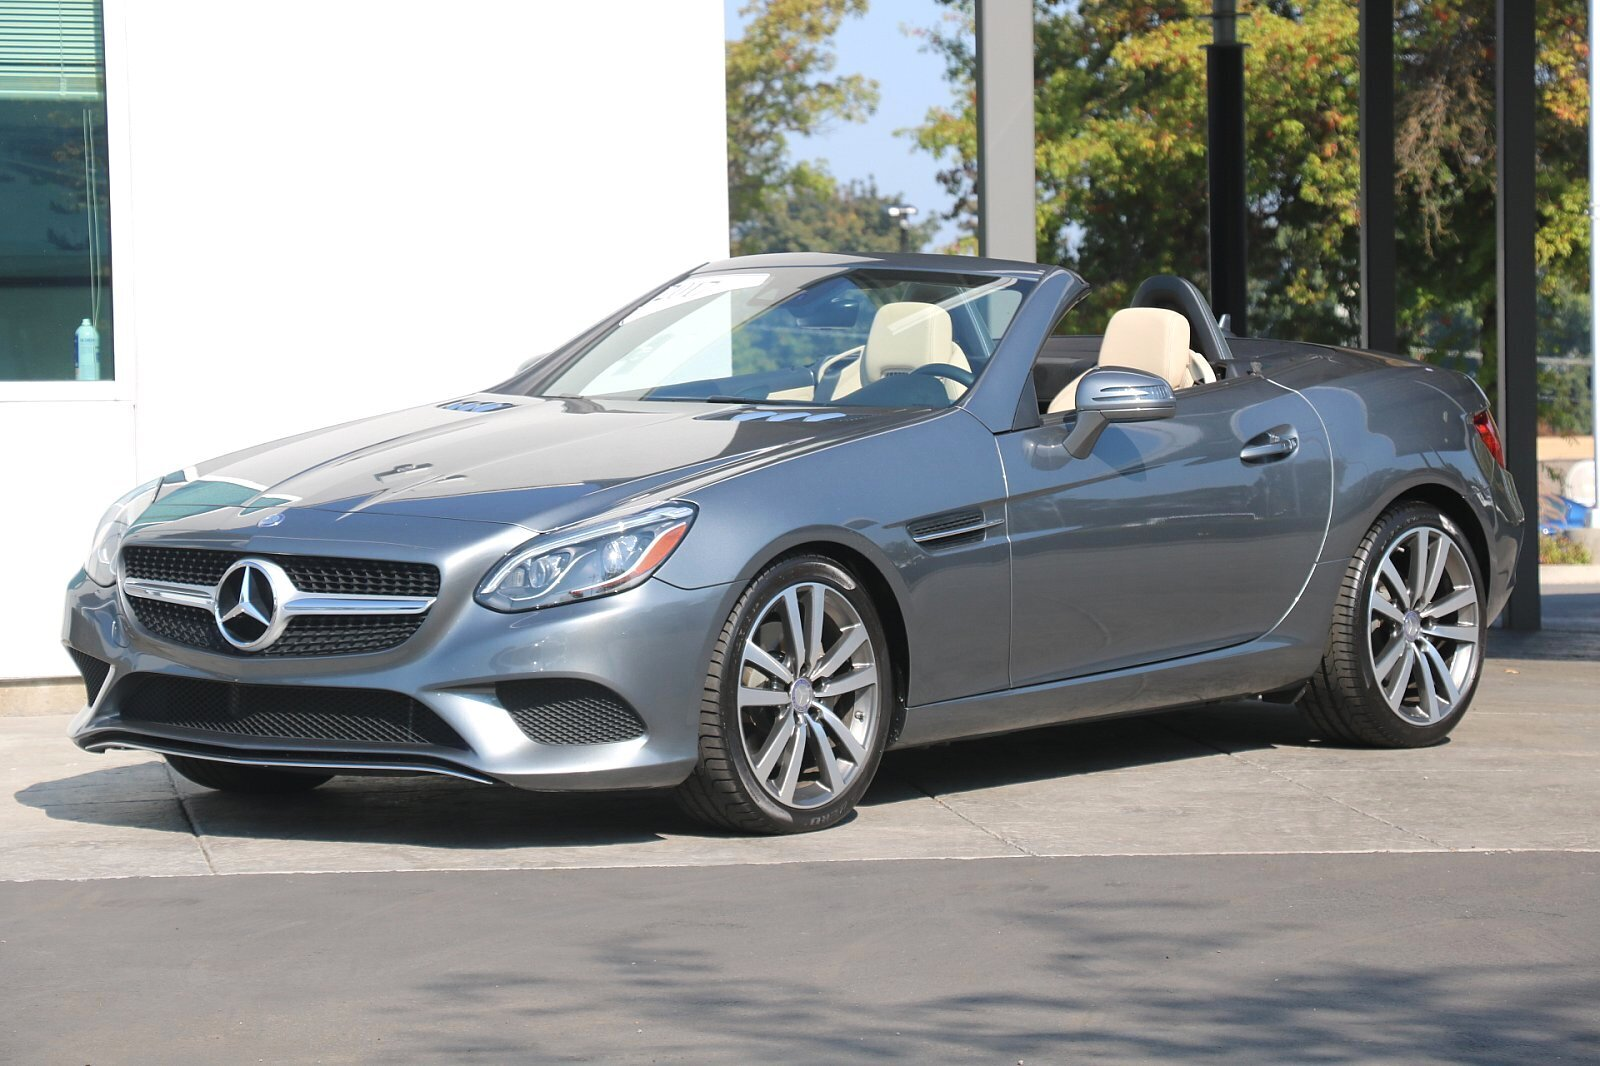 Pre-Owned 2017 Mercedes-Benz SLC 300 Rear Wheel Drive ROADSTER